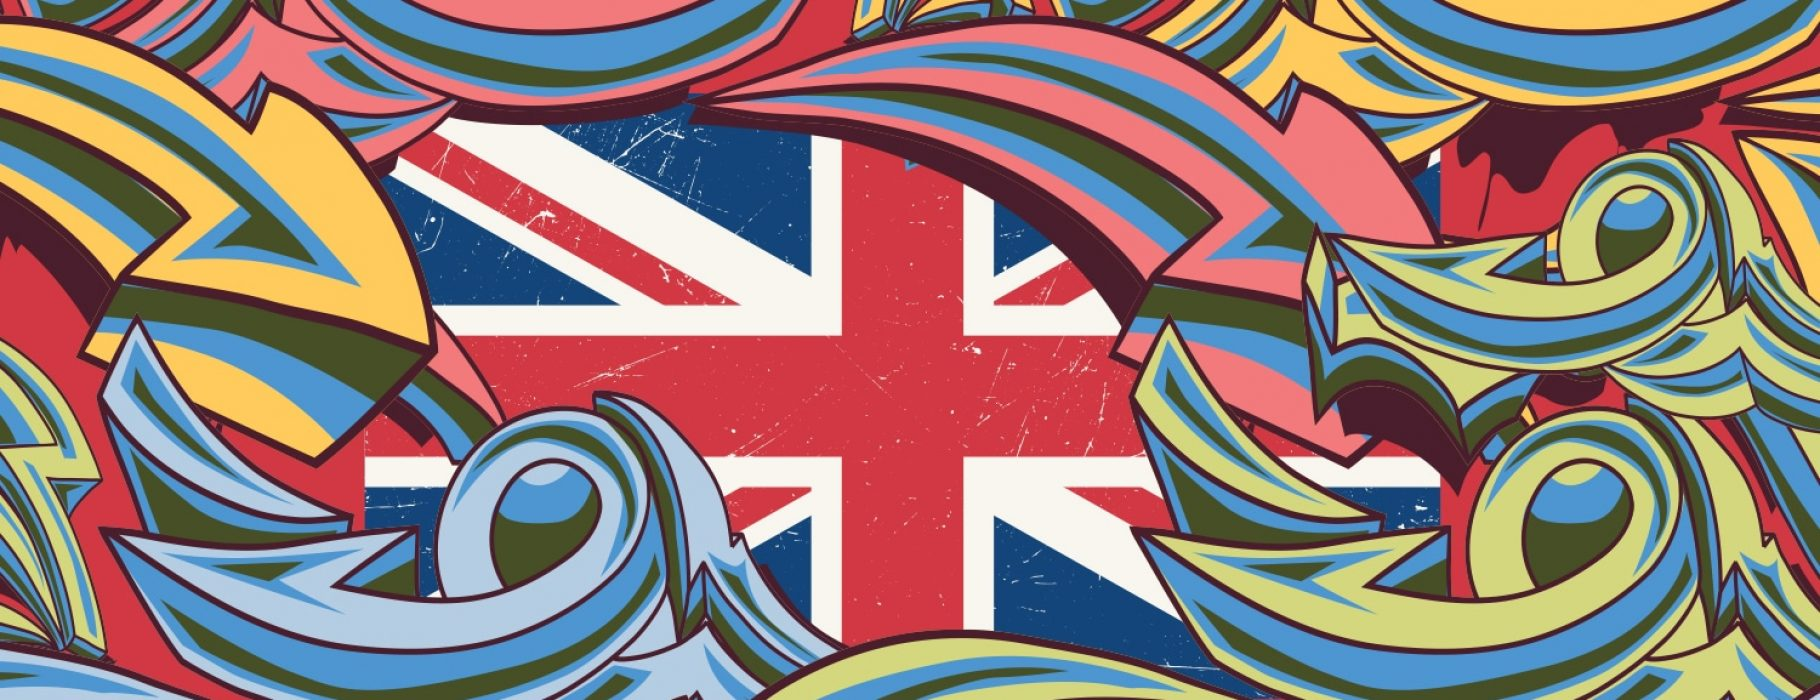 Graffiti-style arrows twist, turn, and point in multiple directions over the flag of the United Kingdom.